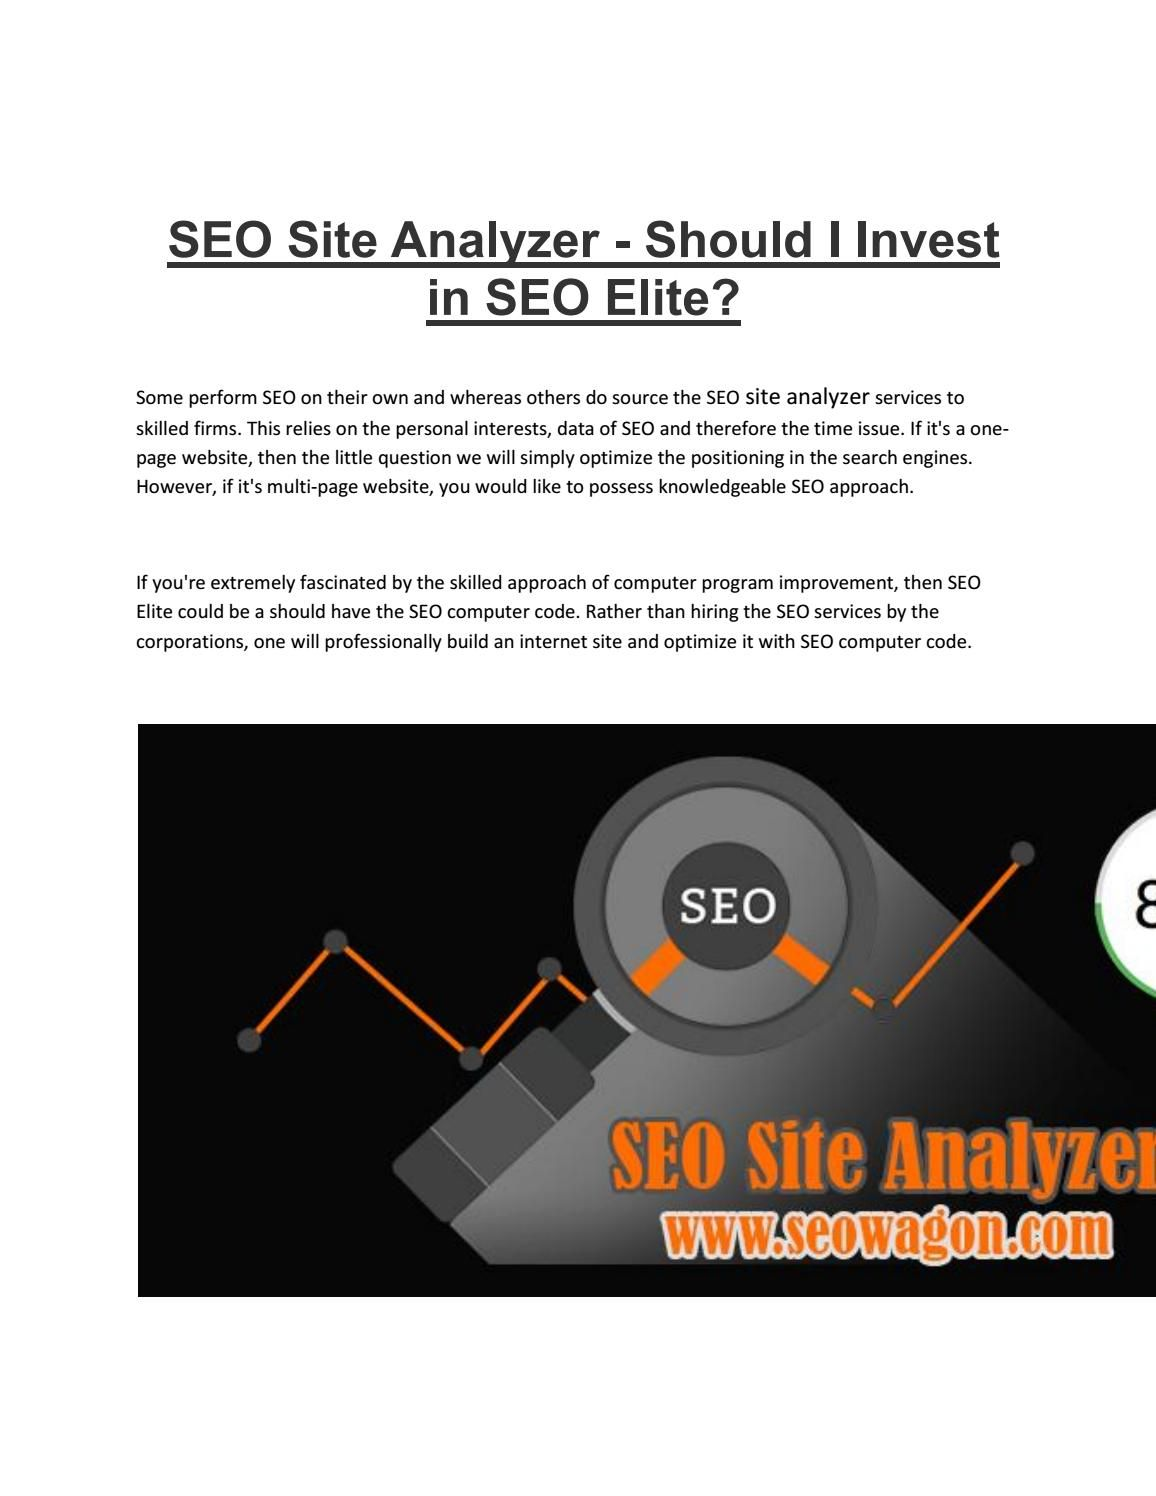 Seo site analyzer  #SEO #Site #Analyzer - Should I Invest in SEO Elite? Some perform SEO on their own and where as others do source the SEO site analyzer services to skilled firms. This relies on the personal interests, data of SEO and therefore the time issue. If it's a one-page website, then the little question we will simply optimize the positioning in the search engines. However, if it's multi-page website, you would like to possess knowledgeable SEO approach. More information…